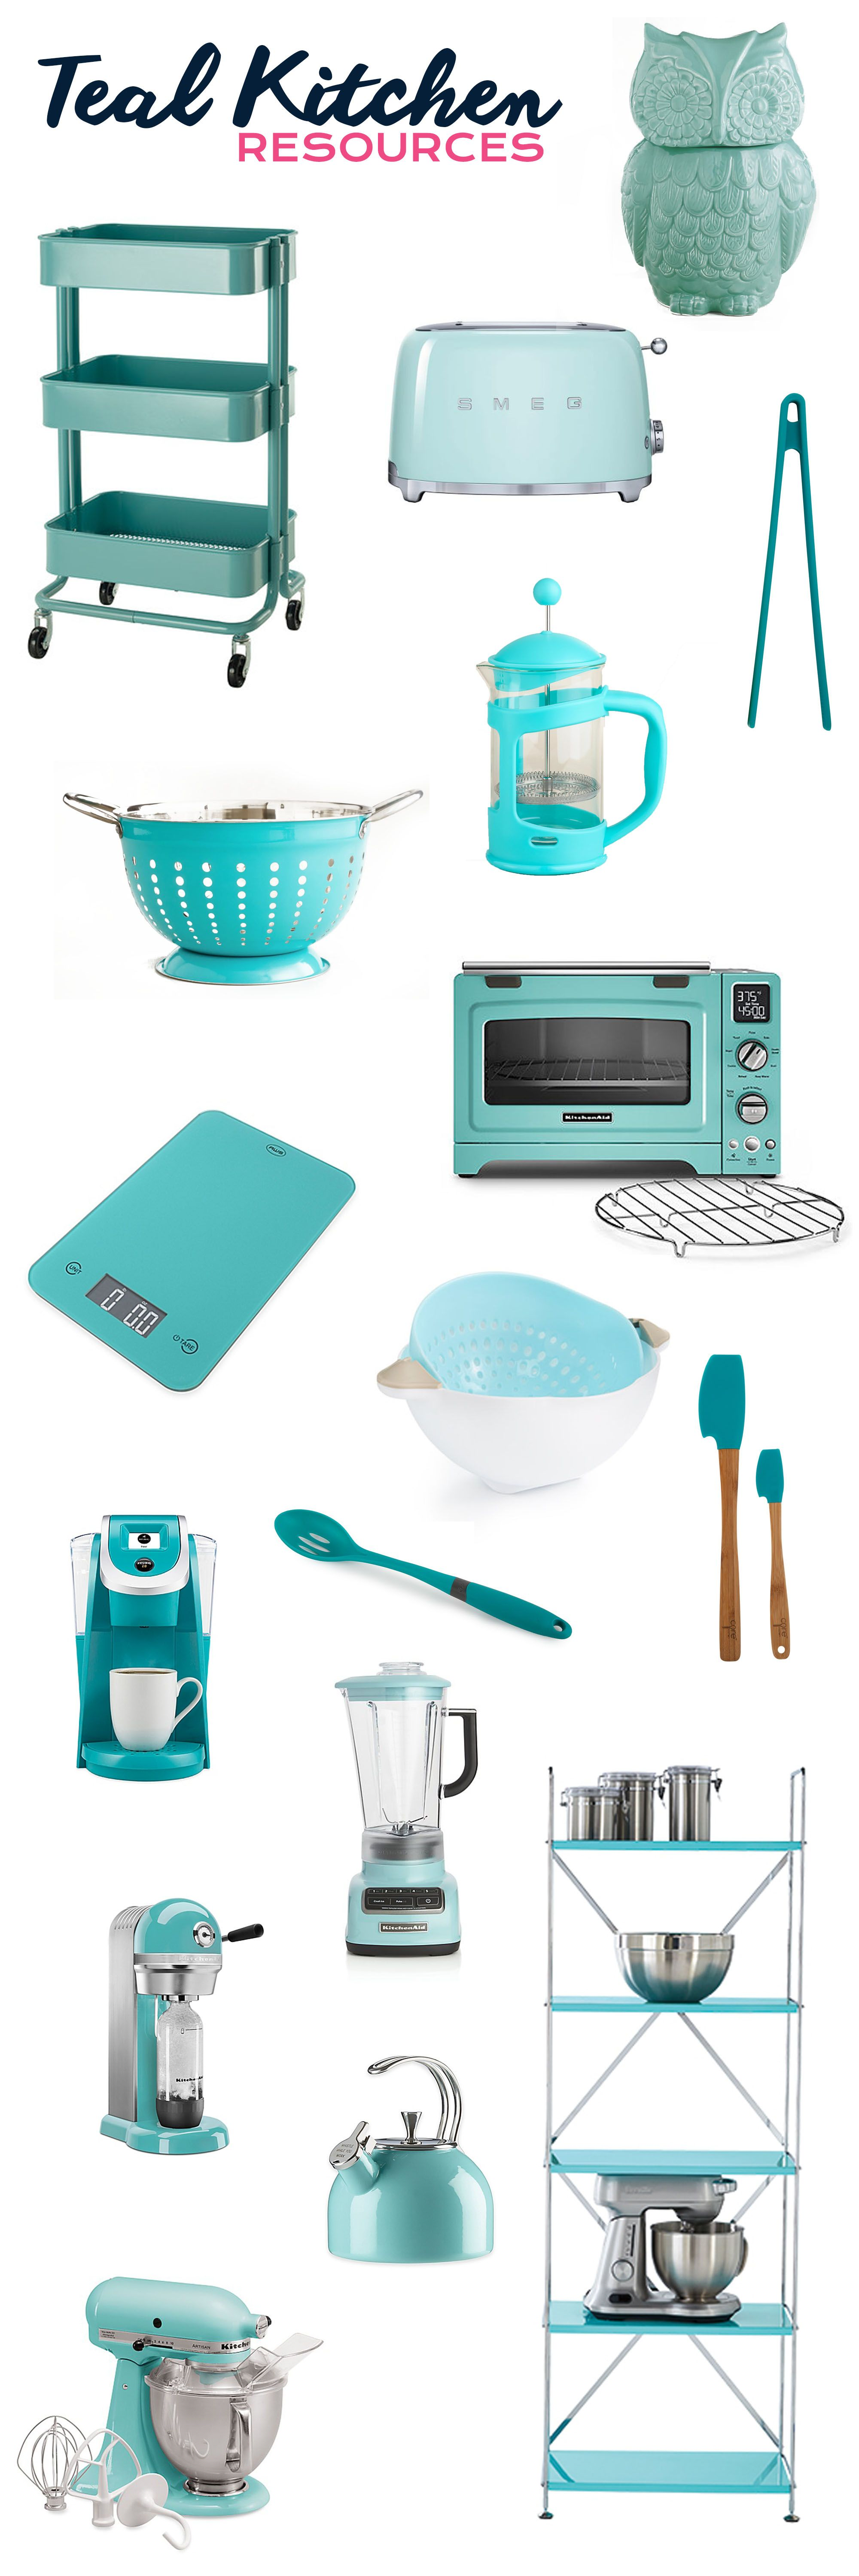 Teal Kitchen Appliances Countertop Cover My Favorite Resources For Kitchens Home Pinterest Utensils Accessories And Storage